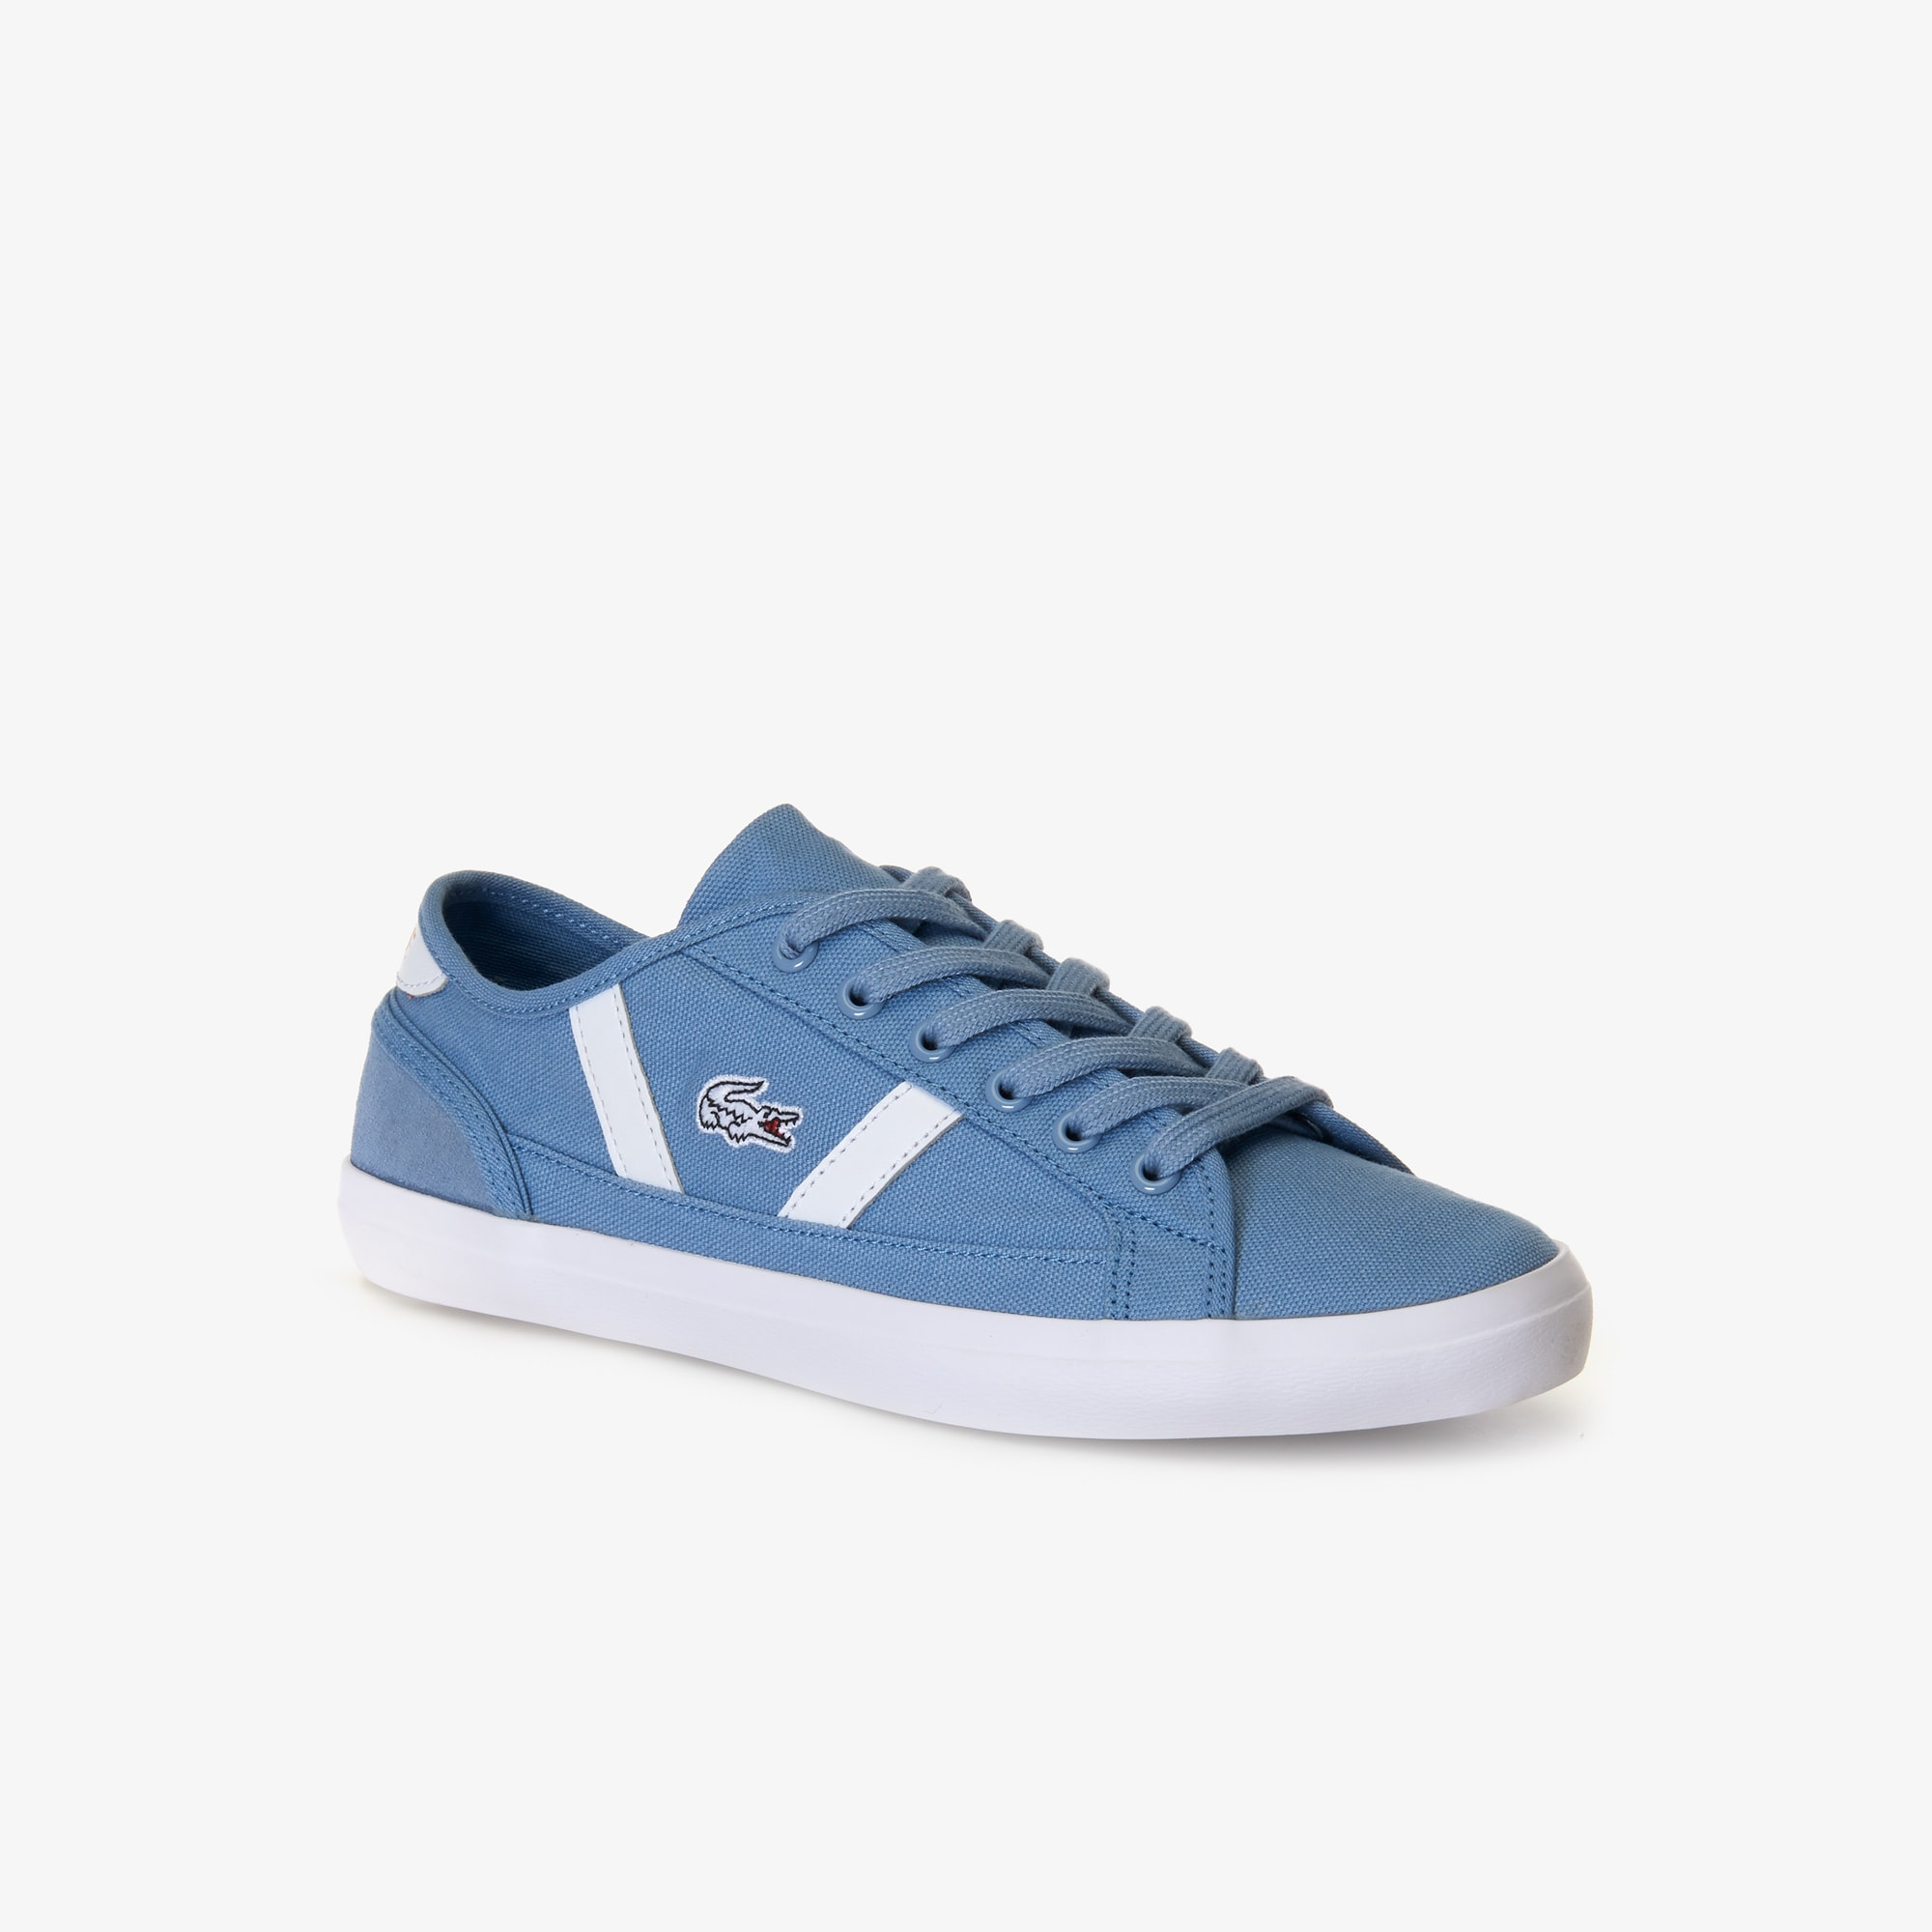 0f2e79ec75c Women's Sideline Canvas And Leather Sneakers in Light Blue/White